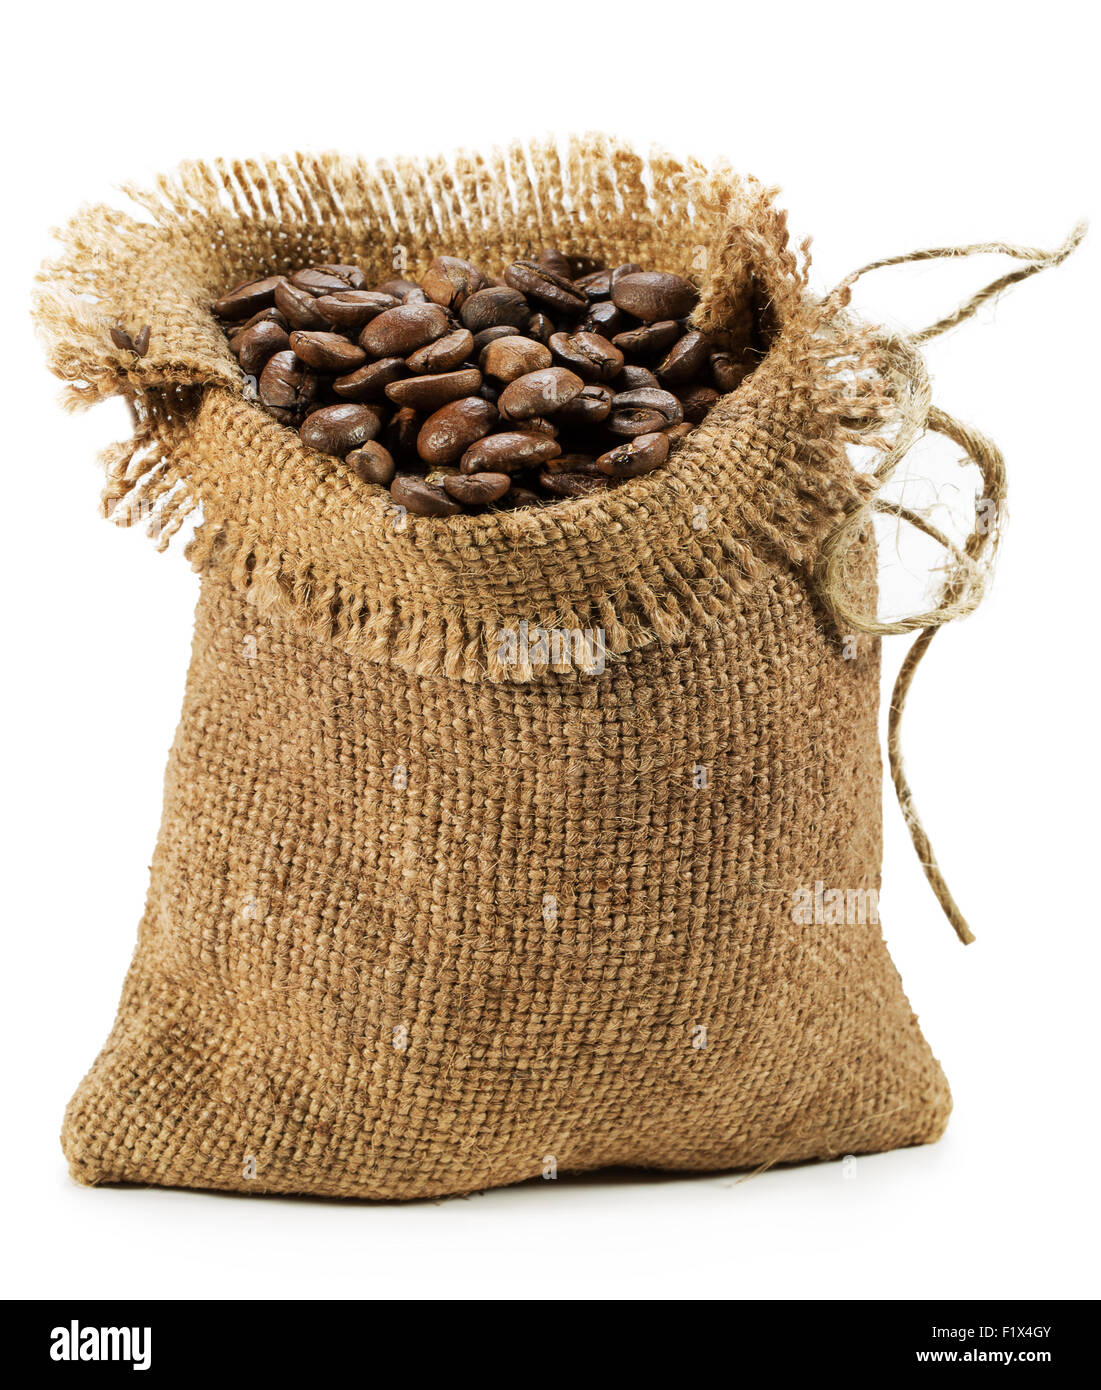 bag with coffee beans isolated on the white background. - Stock Image